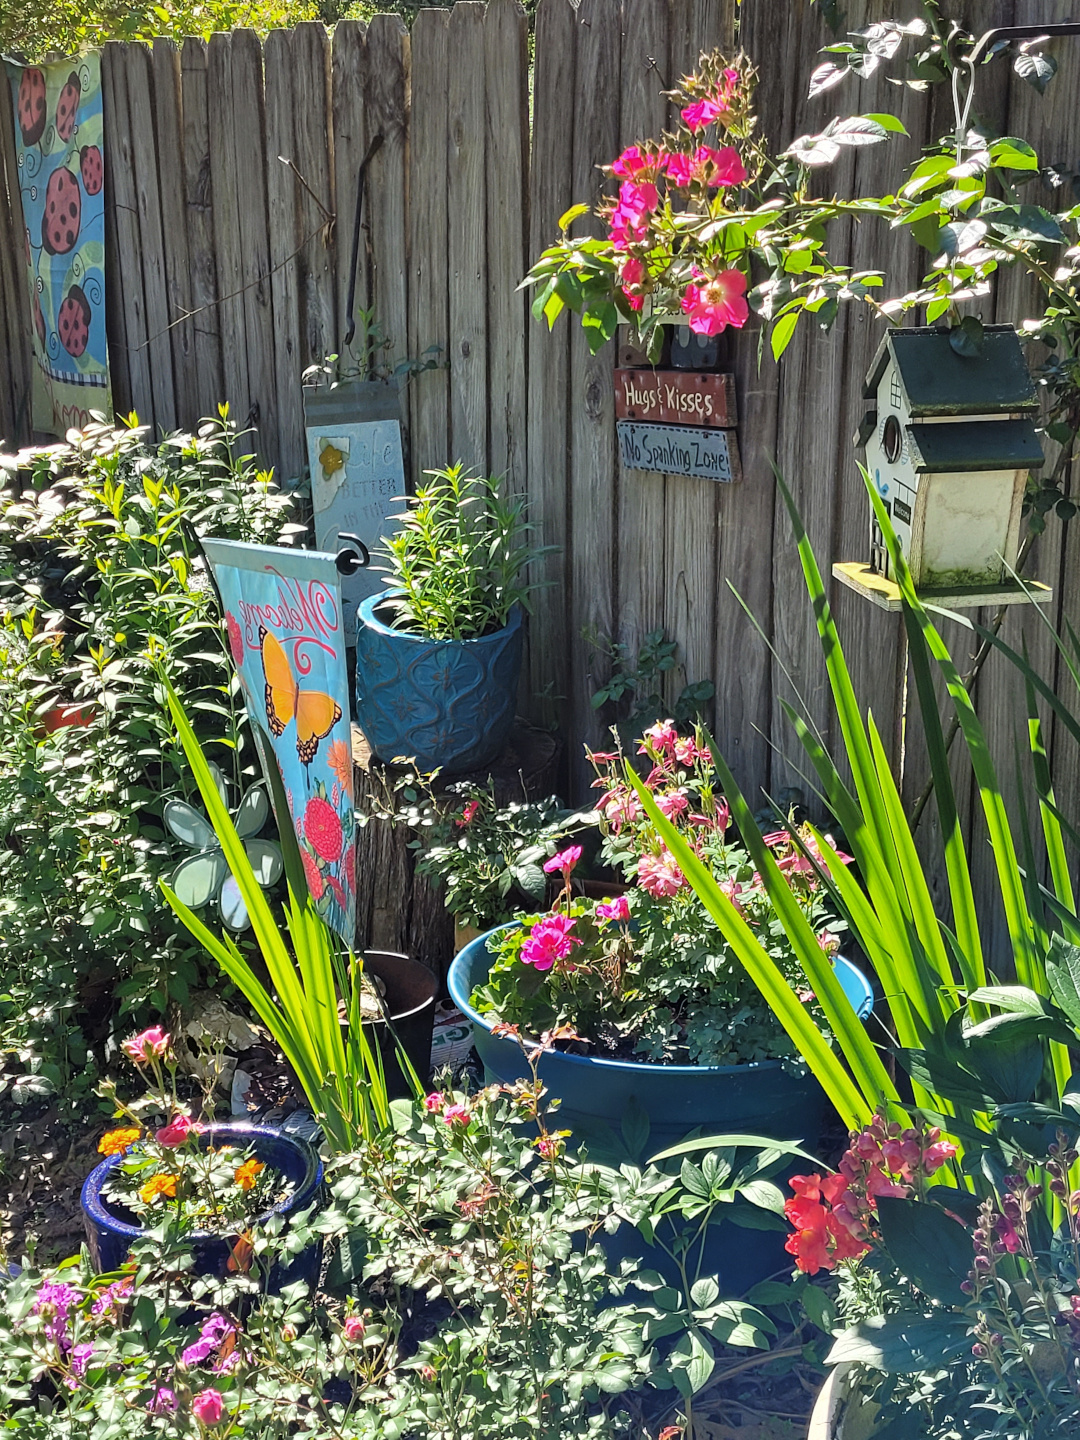 A wooden fence with many flowers in pots in front of it